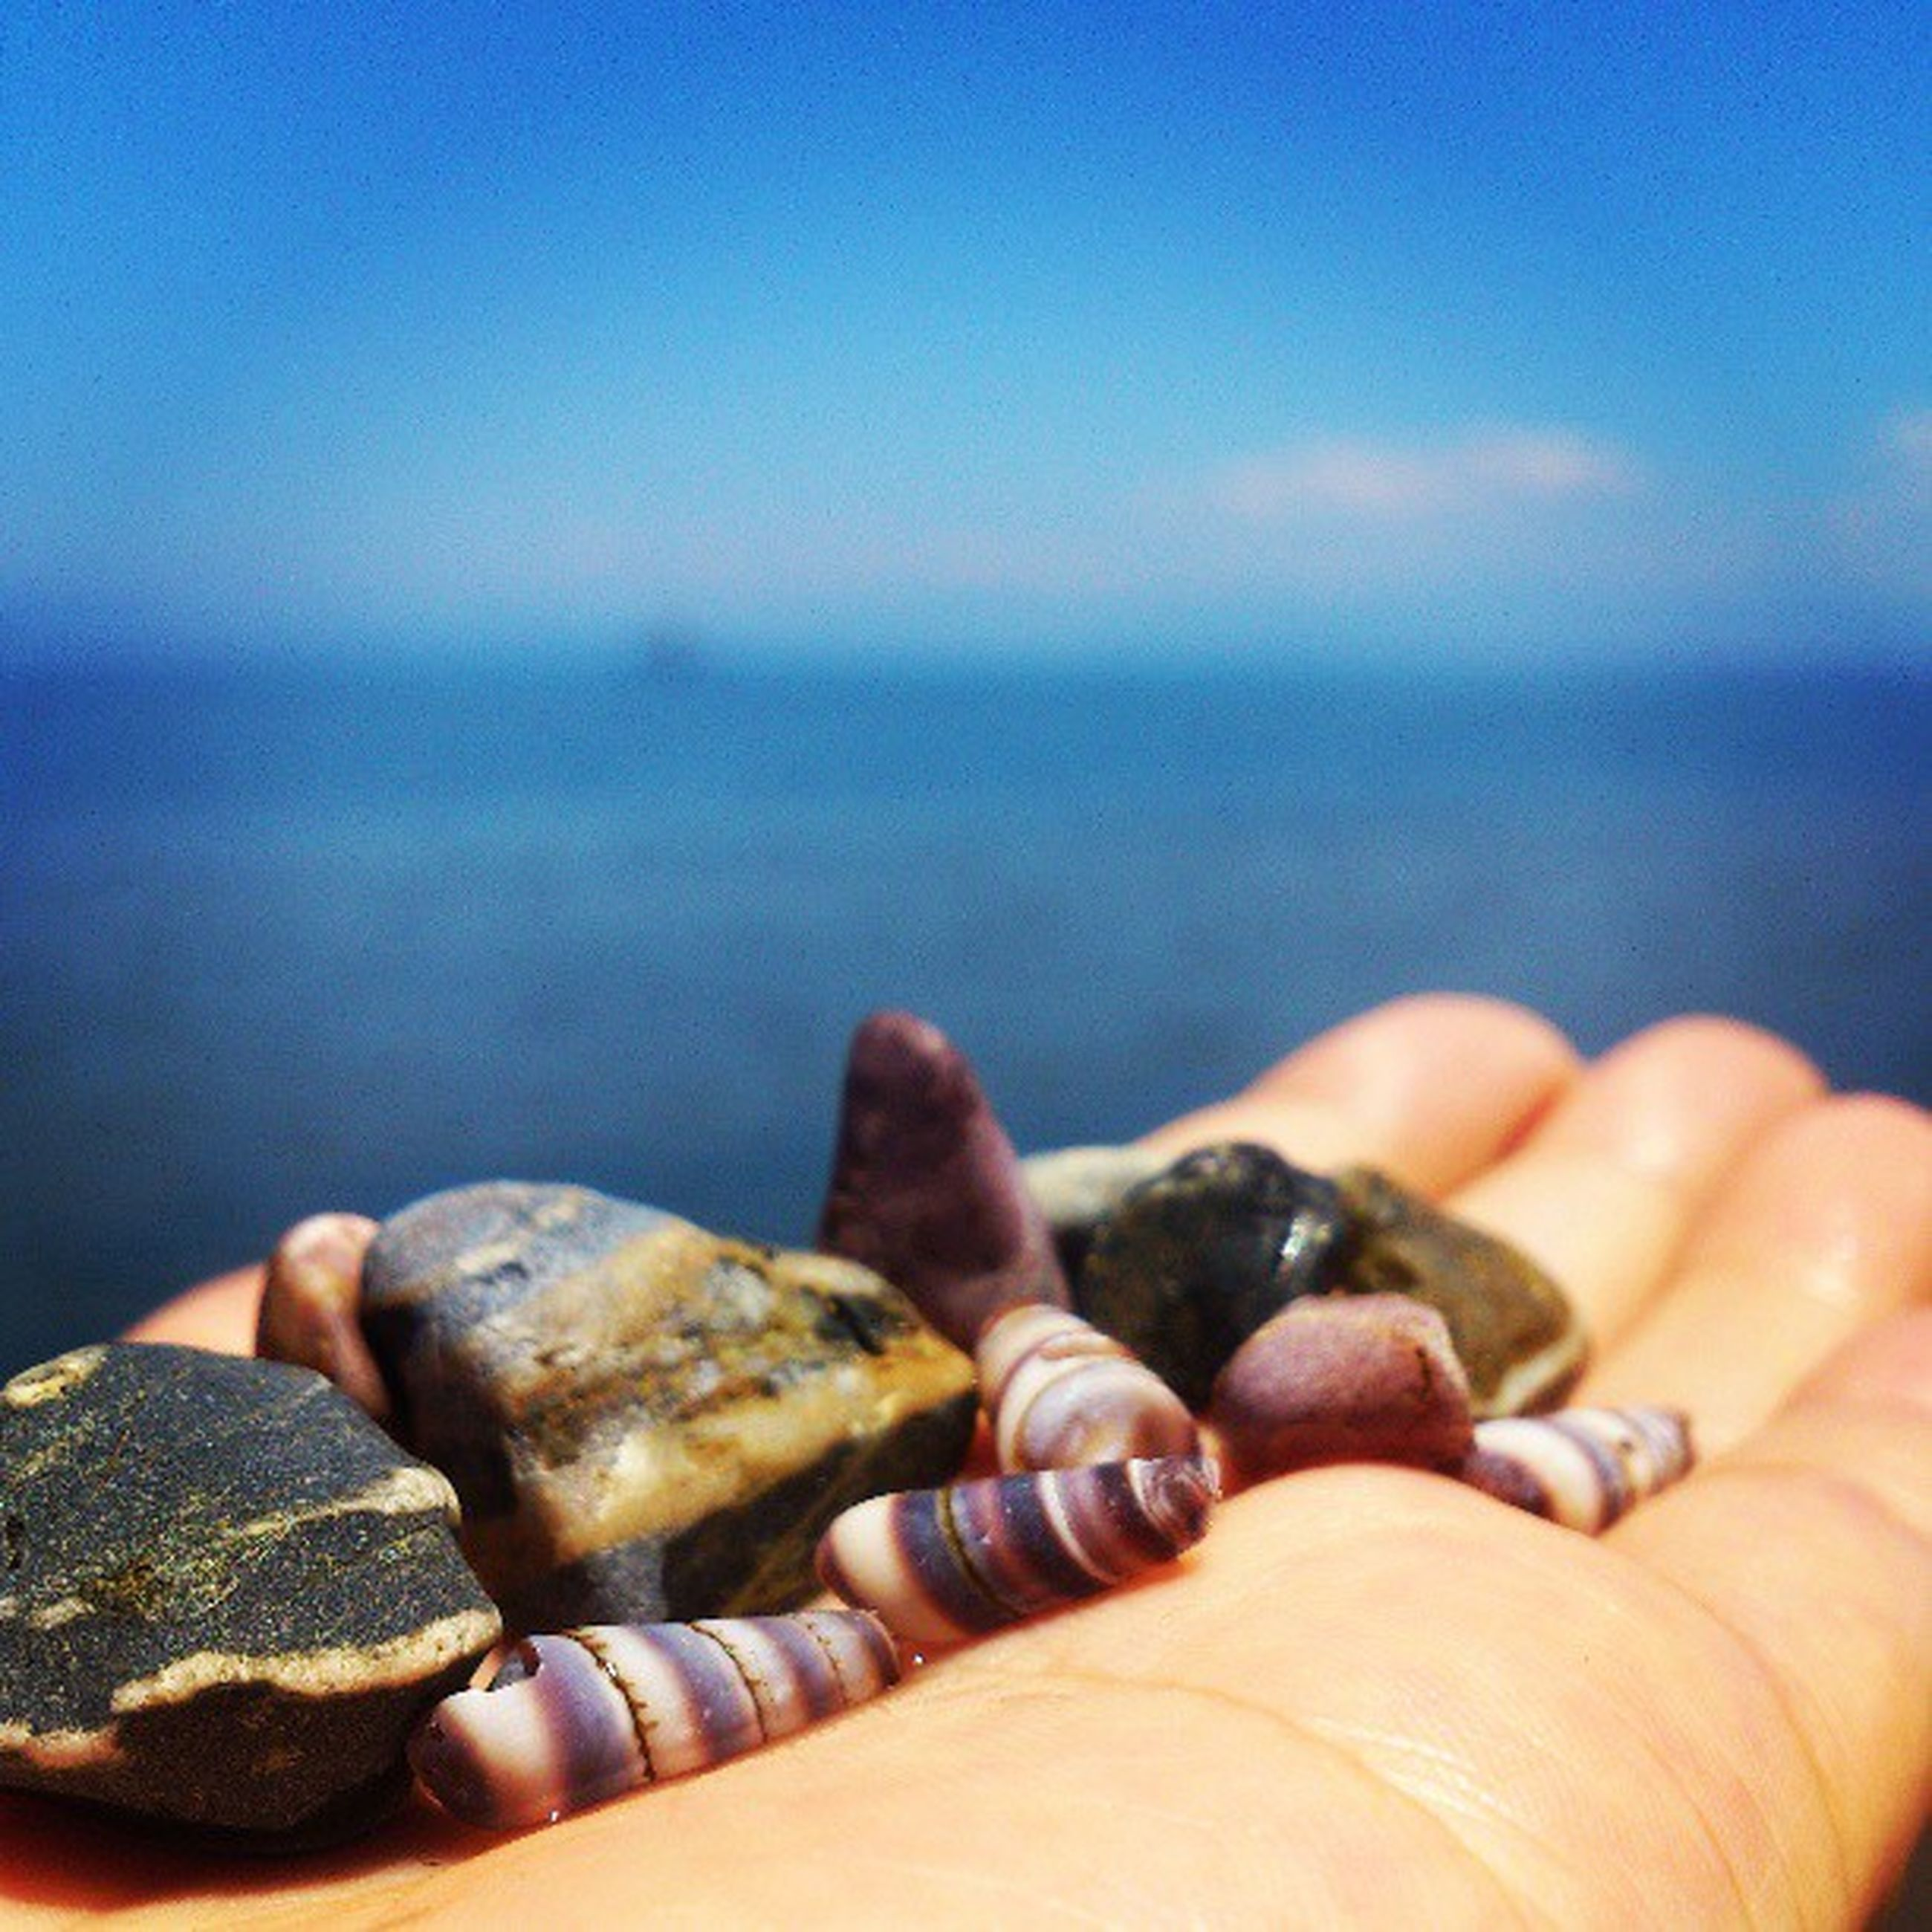 person, part of, sea, human finger, cropped, beach, personal perspective, holding, unrecognizable person, close-up, focus on foreground, seashell, water, sky, leisure activity, horizon over water, lifestyles